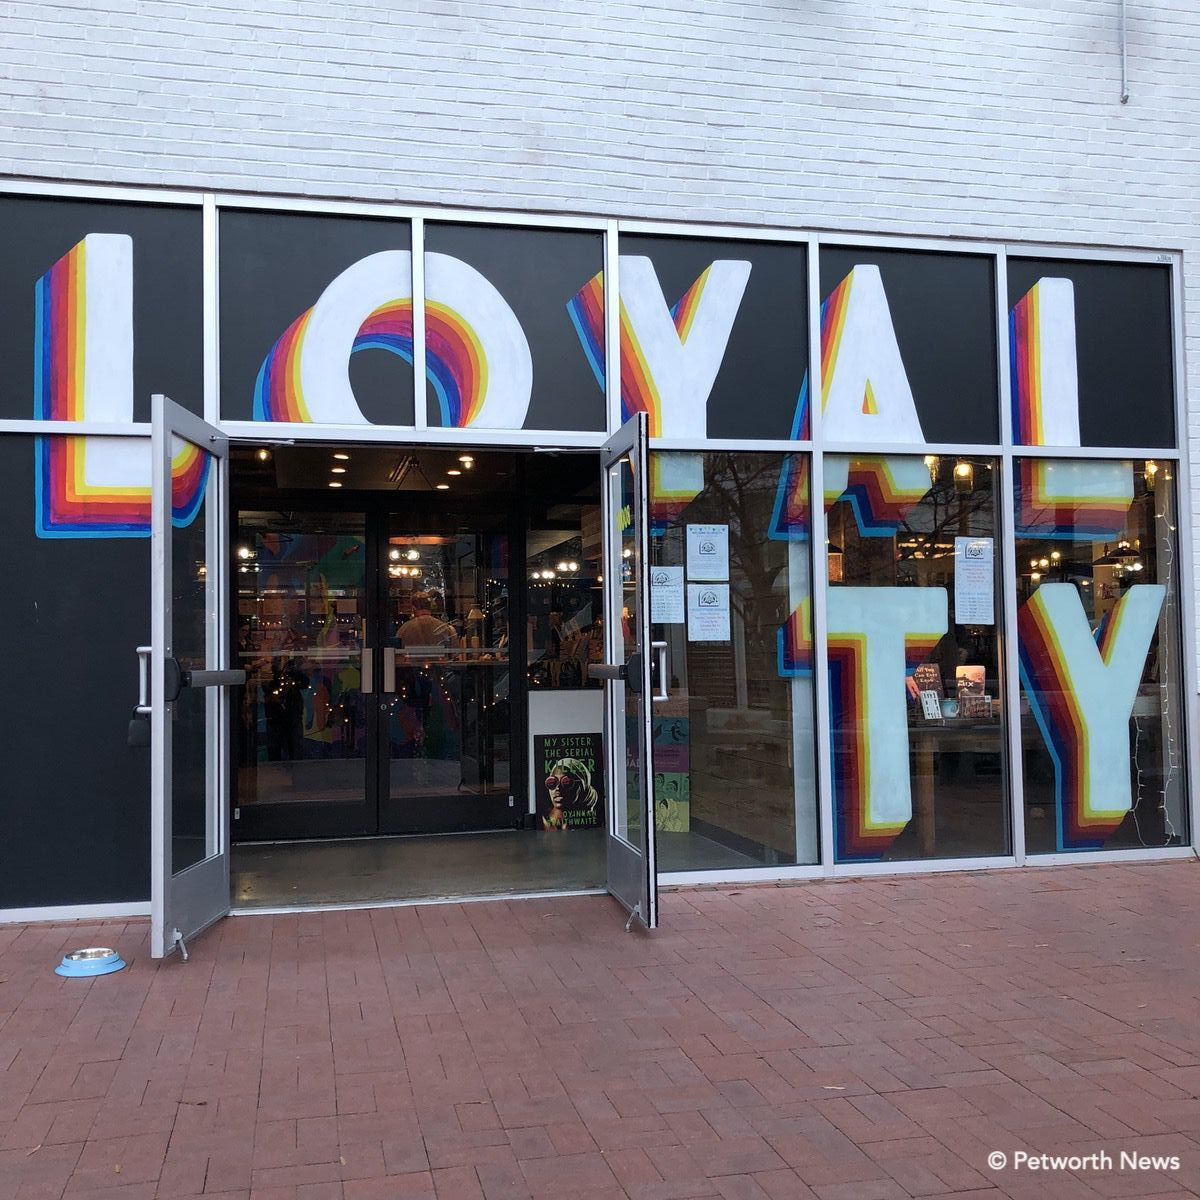 The Loyalty bookstore pop-up in Silver Spring. The concept now moves to Upshur Street.